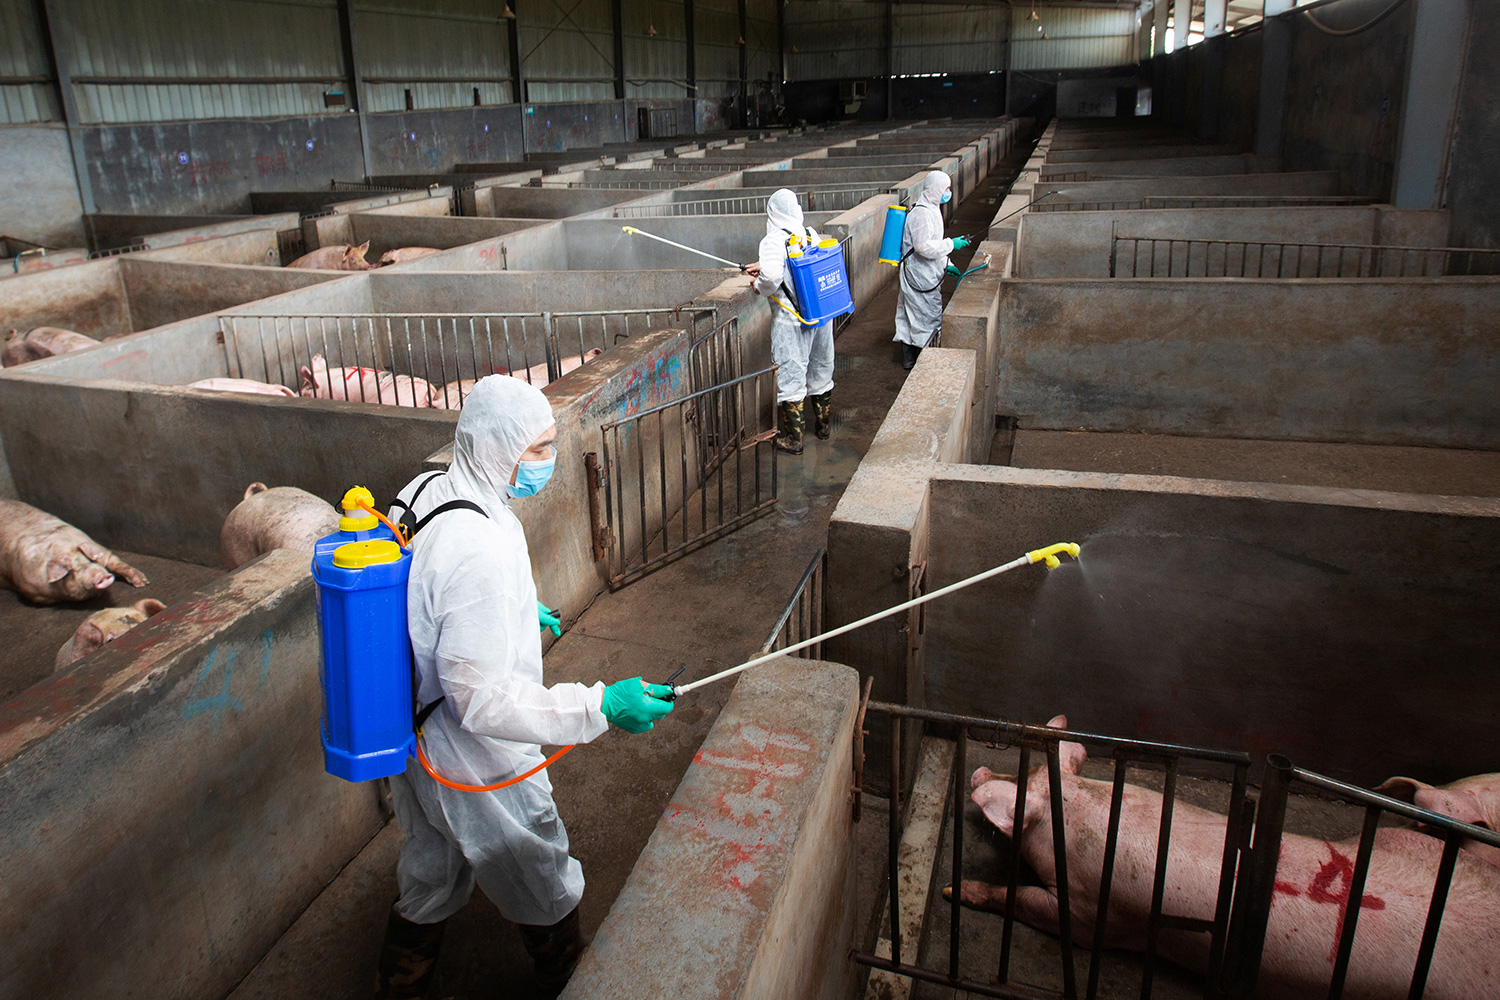 Picture shows the interior of a large pen with separate areas blocked off for different group of pigs. Workers in protective suits walk through and spray something.